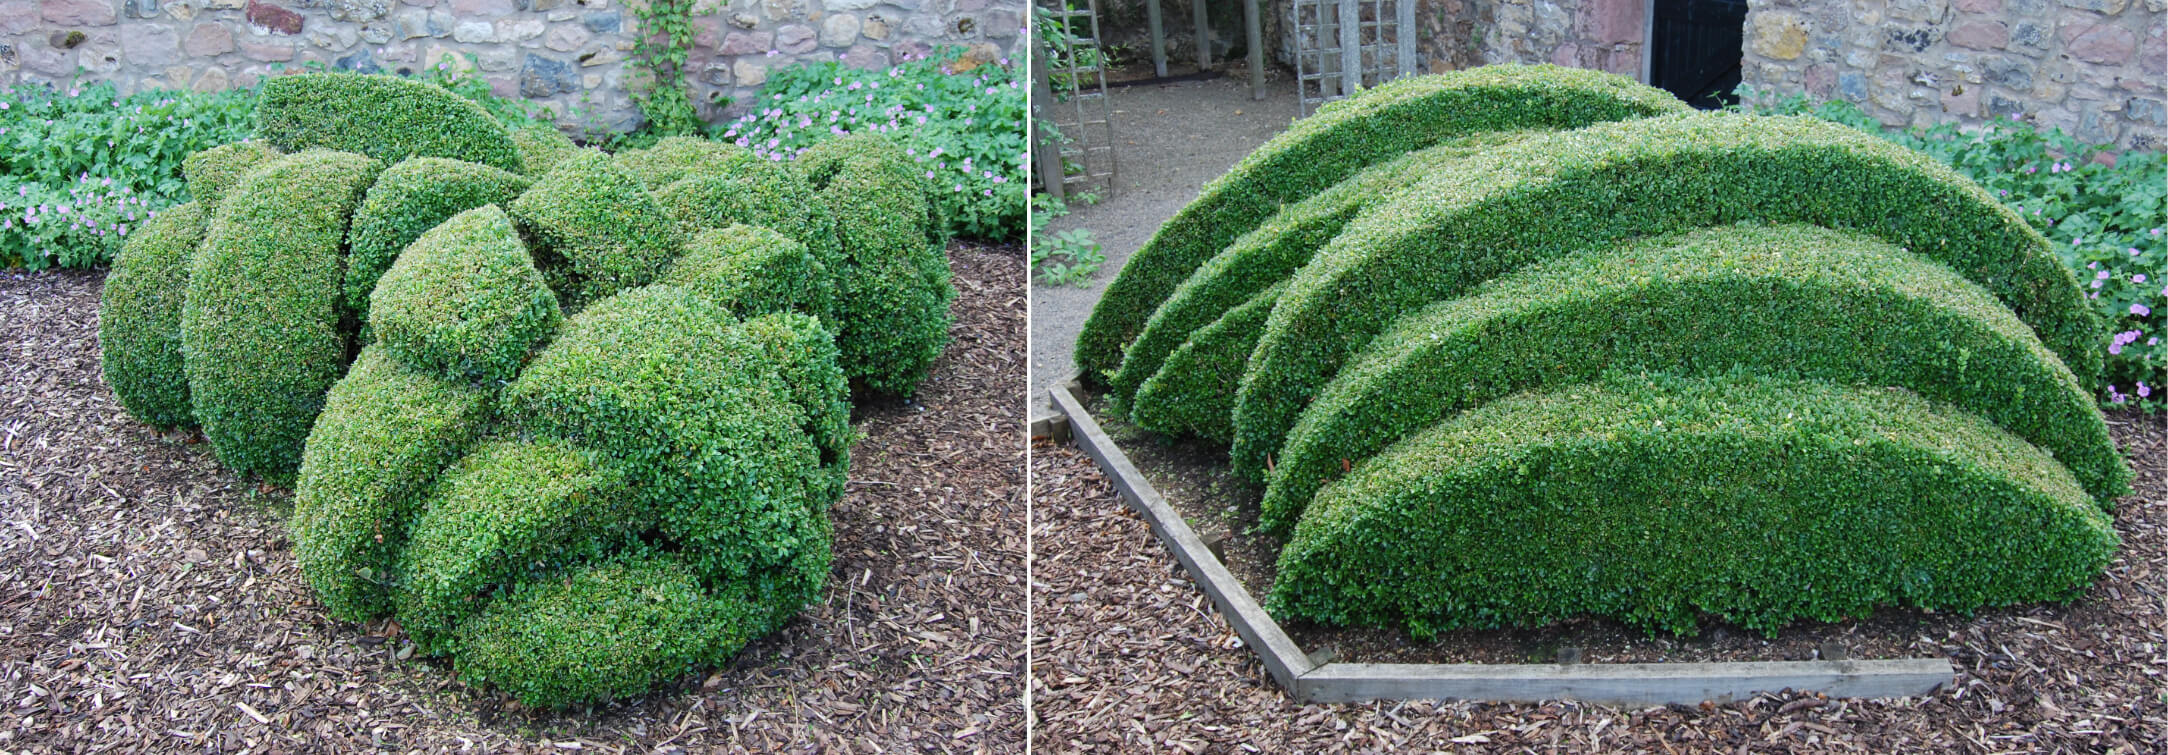 Inventive clipping: box bushes by Head Gardener Vincent Dudley at Whitburgh House, Midlothian, Scotland